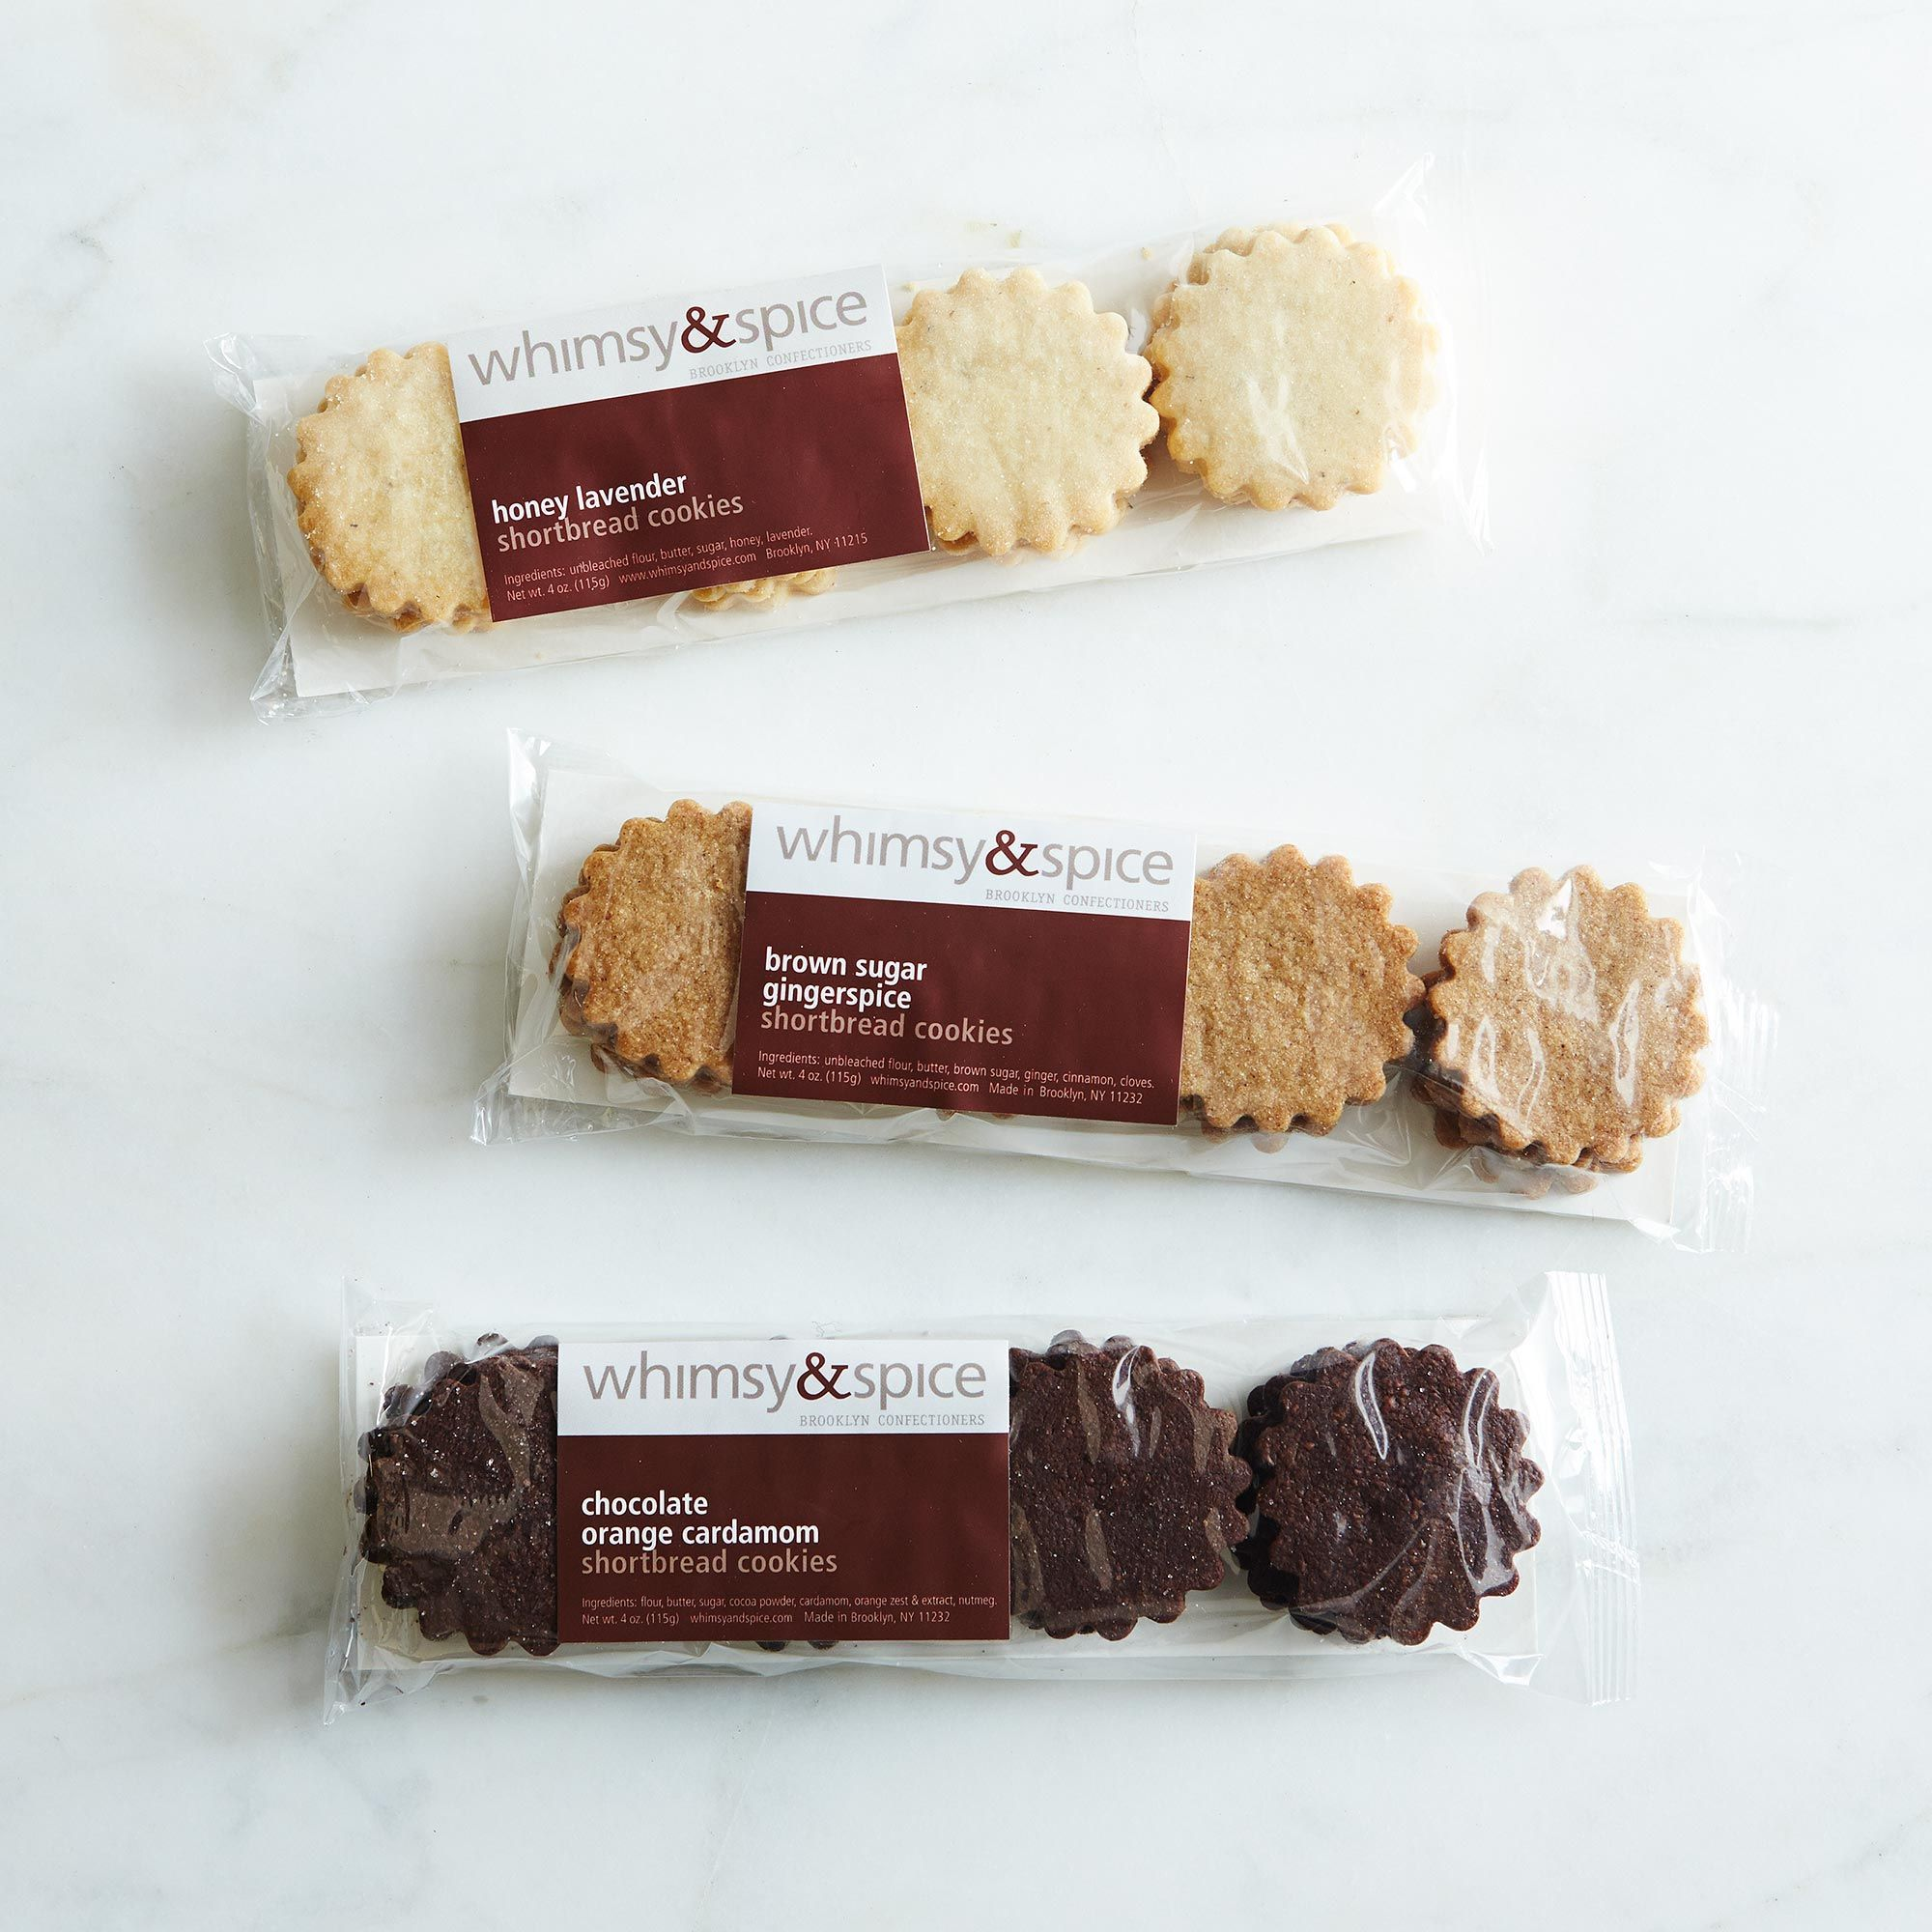 88c30f20 a0f7 11e5 a190 0ef7535729df  whimsy and spice holiday shortbread cookies set of 3 gift pack provisions mark weinberg 19 11 14 0271 silo